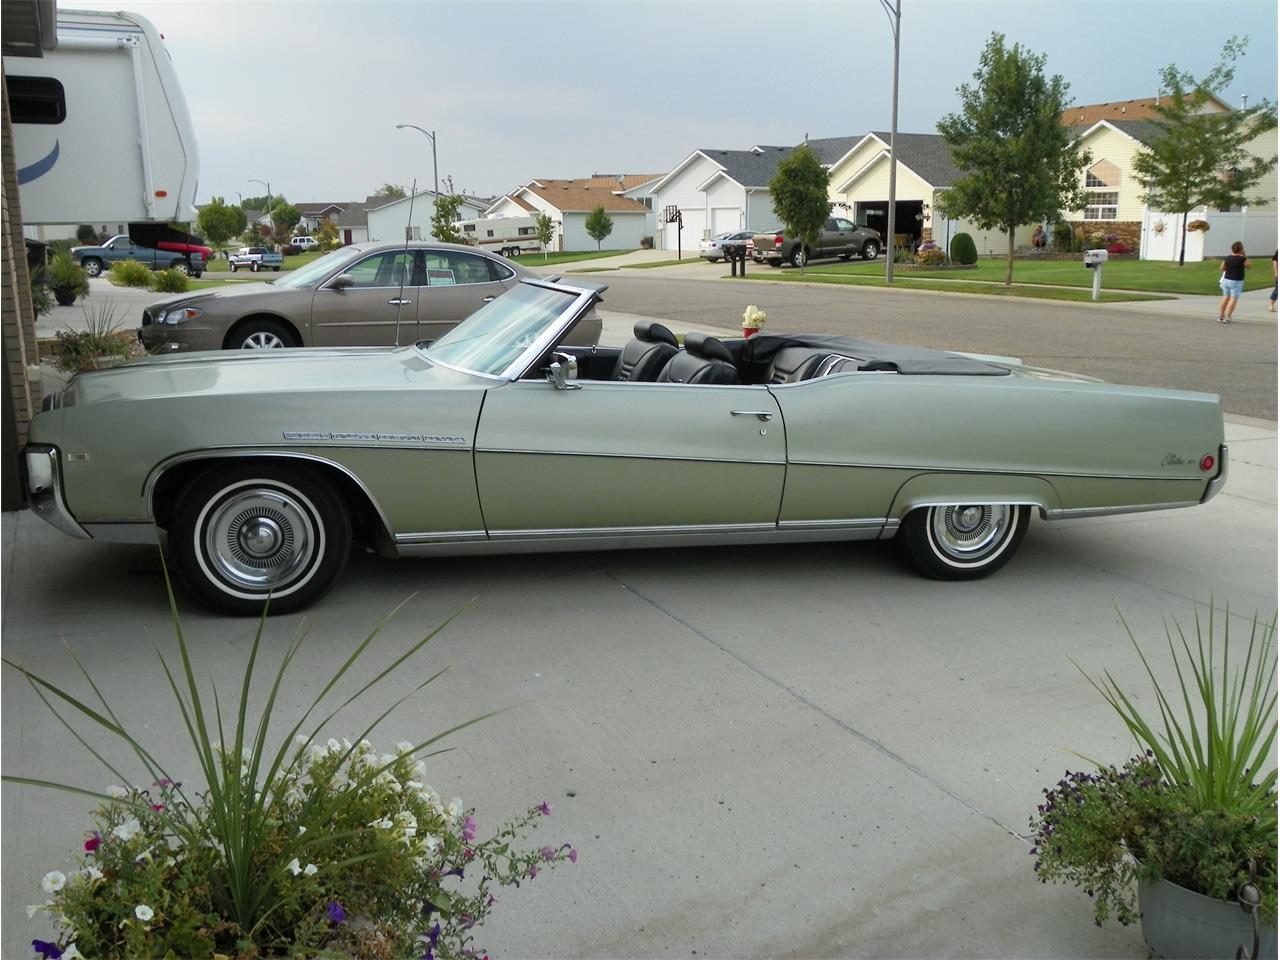 Large Picture of Classic '69 Buick Electra 225 - $15,000.00 Offered by a Private Seller - QC4J